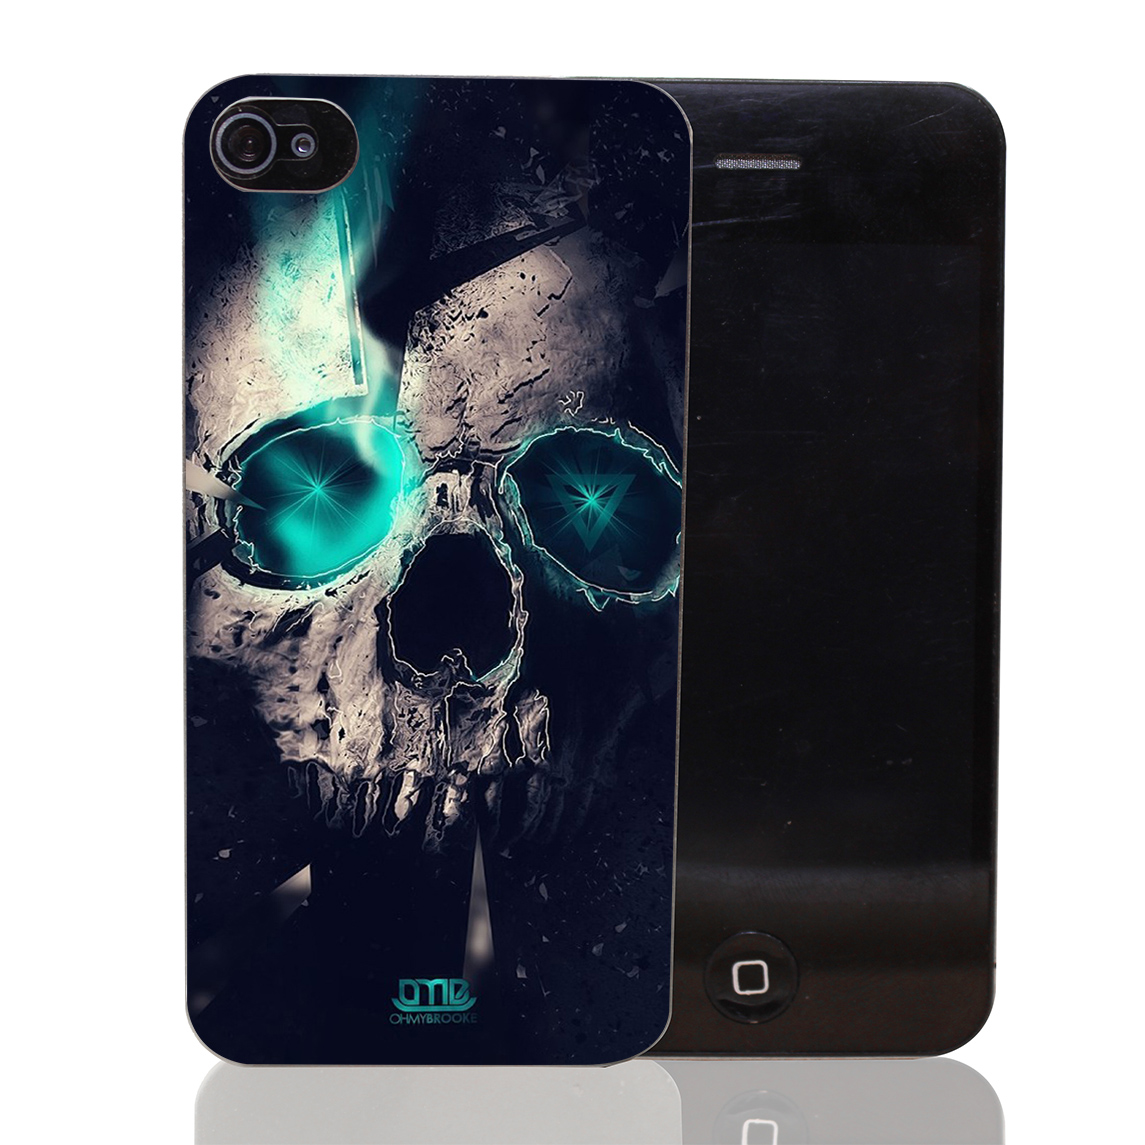 830T Blue Eyes Skull Head Hard Transparent Clear Case for iPhone 4 4s 5 5s SE 5c 6 6s 7 & Plus